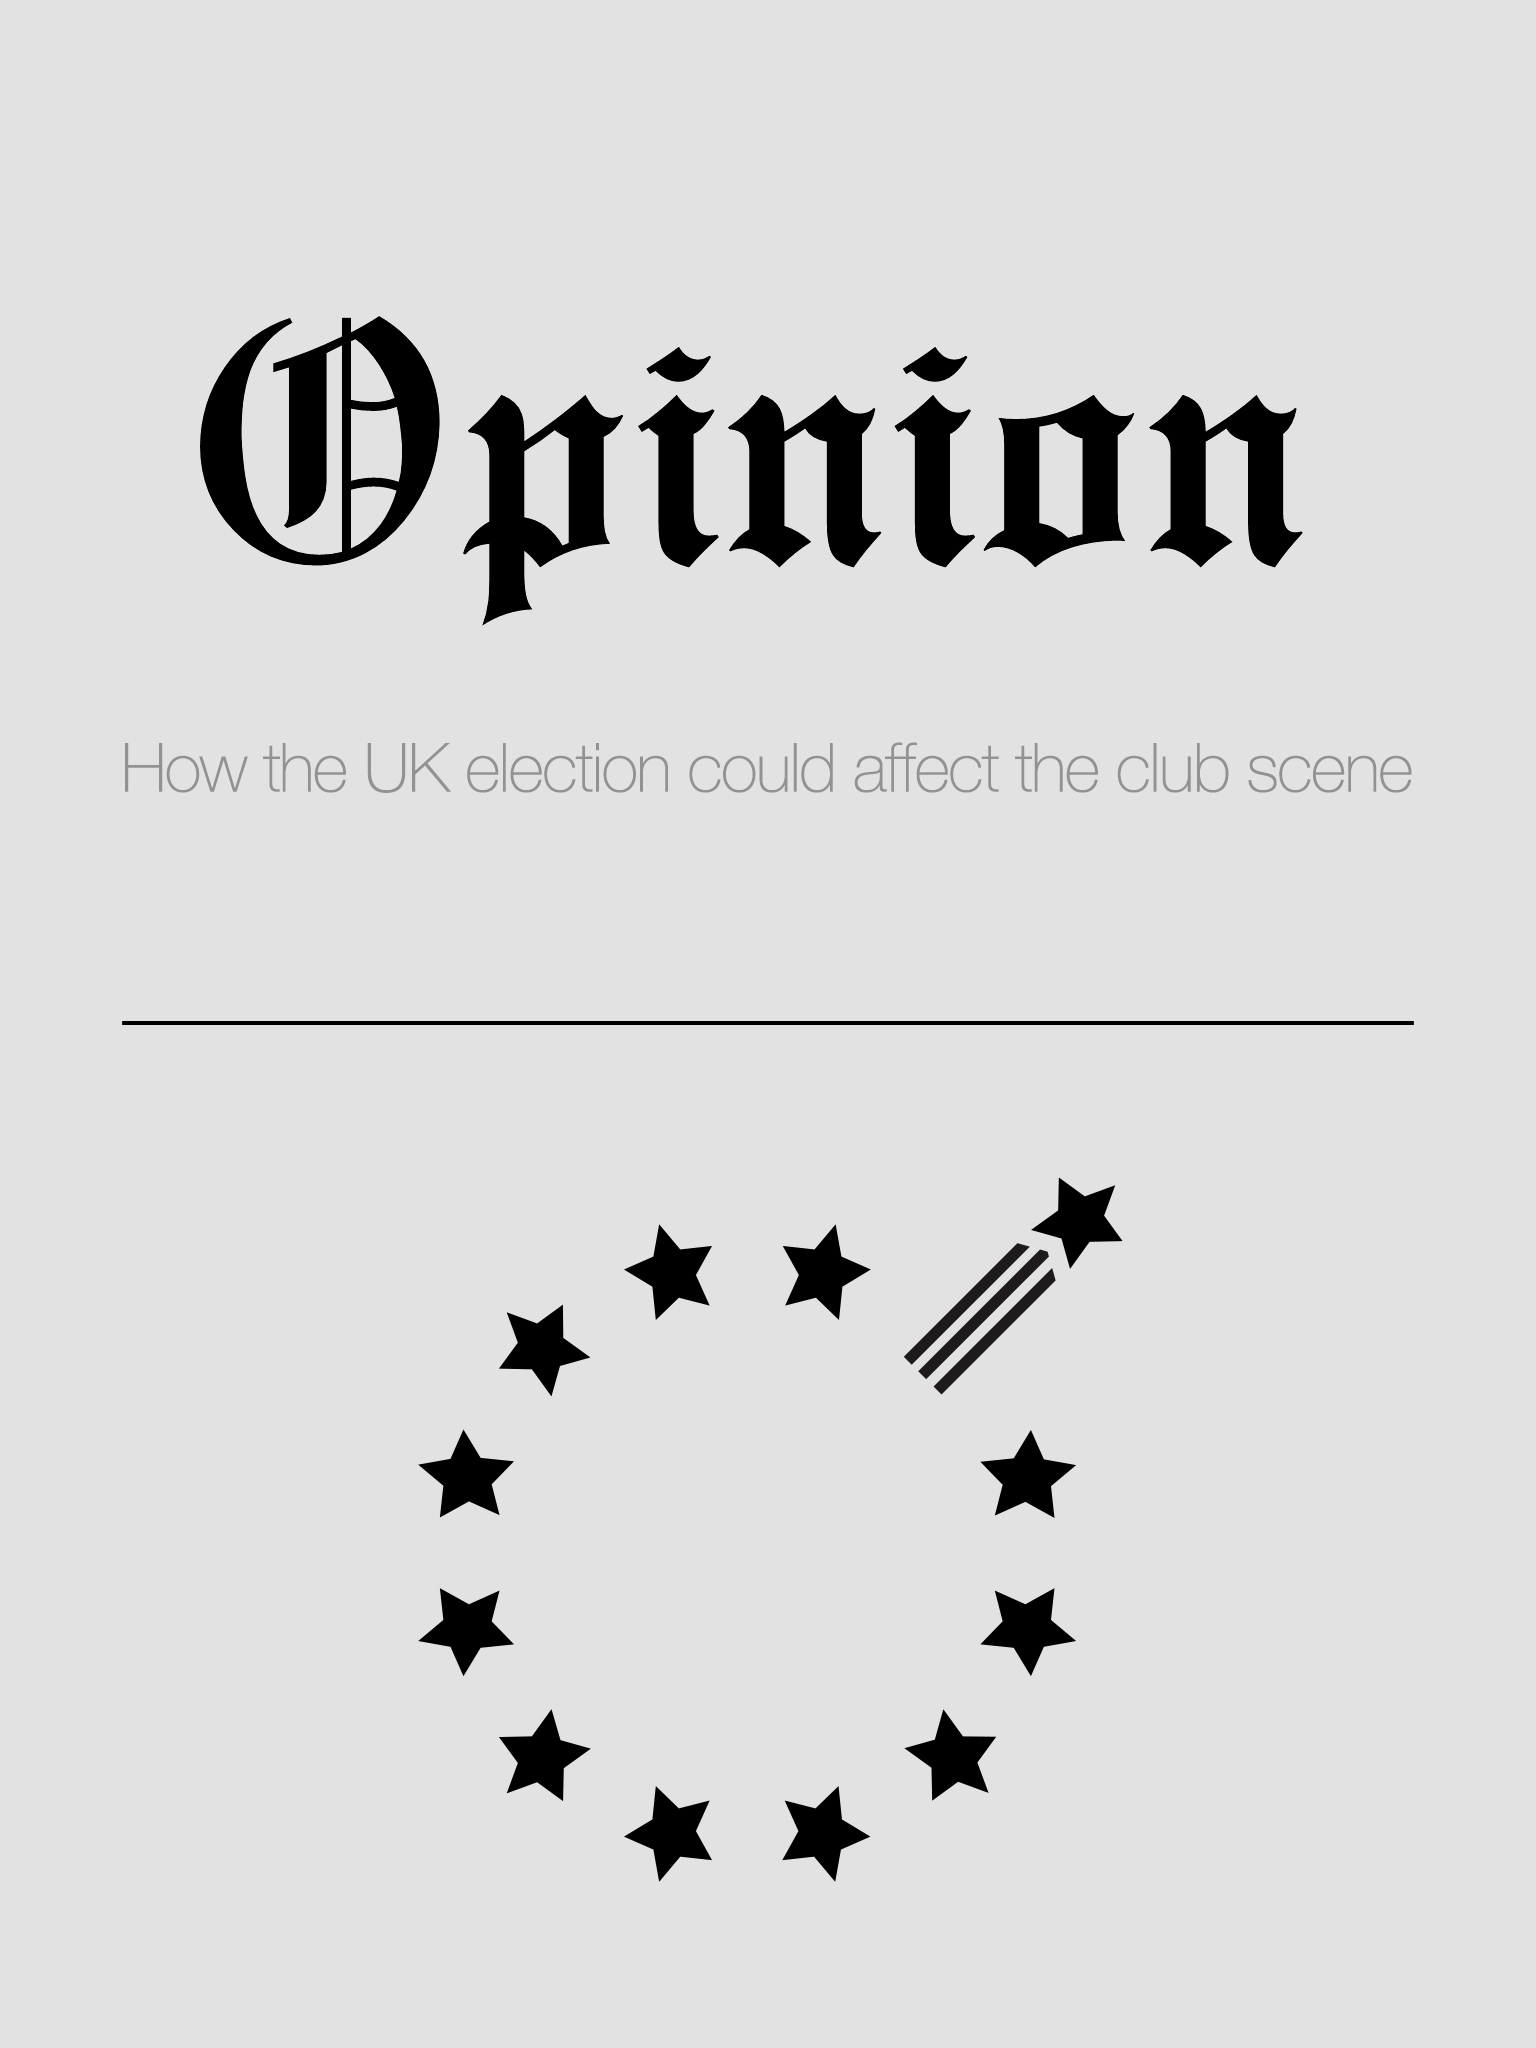 Opinion: How the UK election could affect the club scene